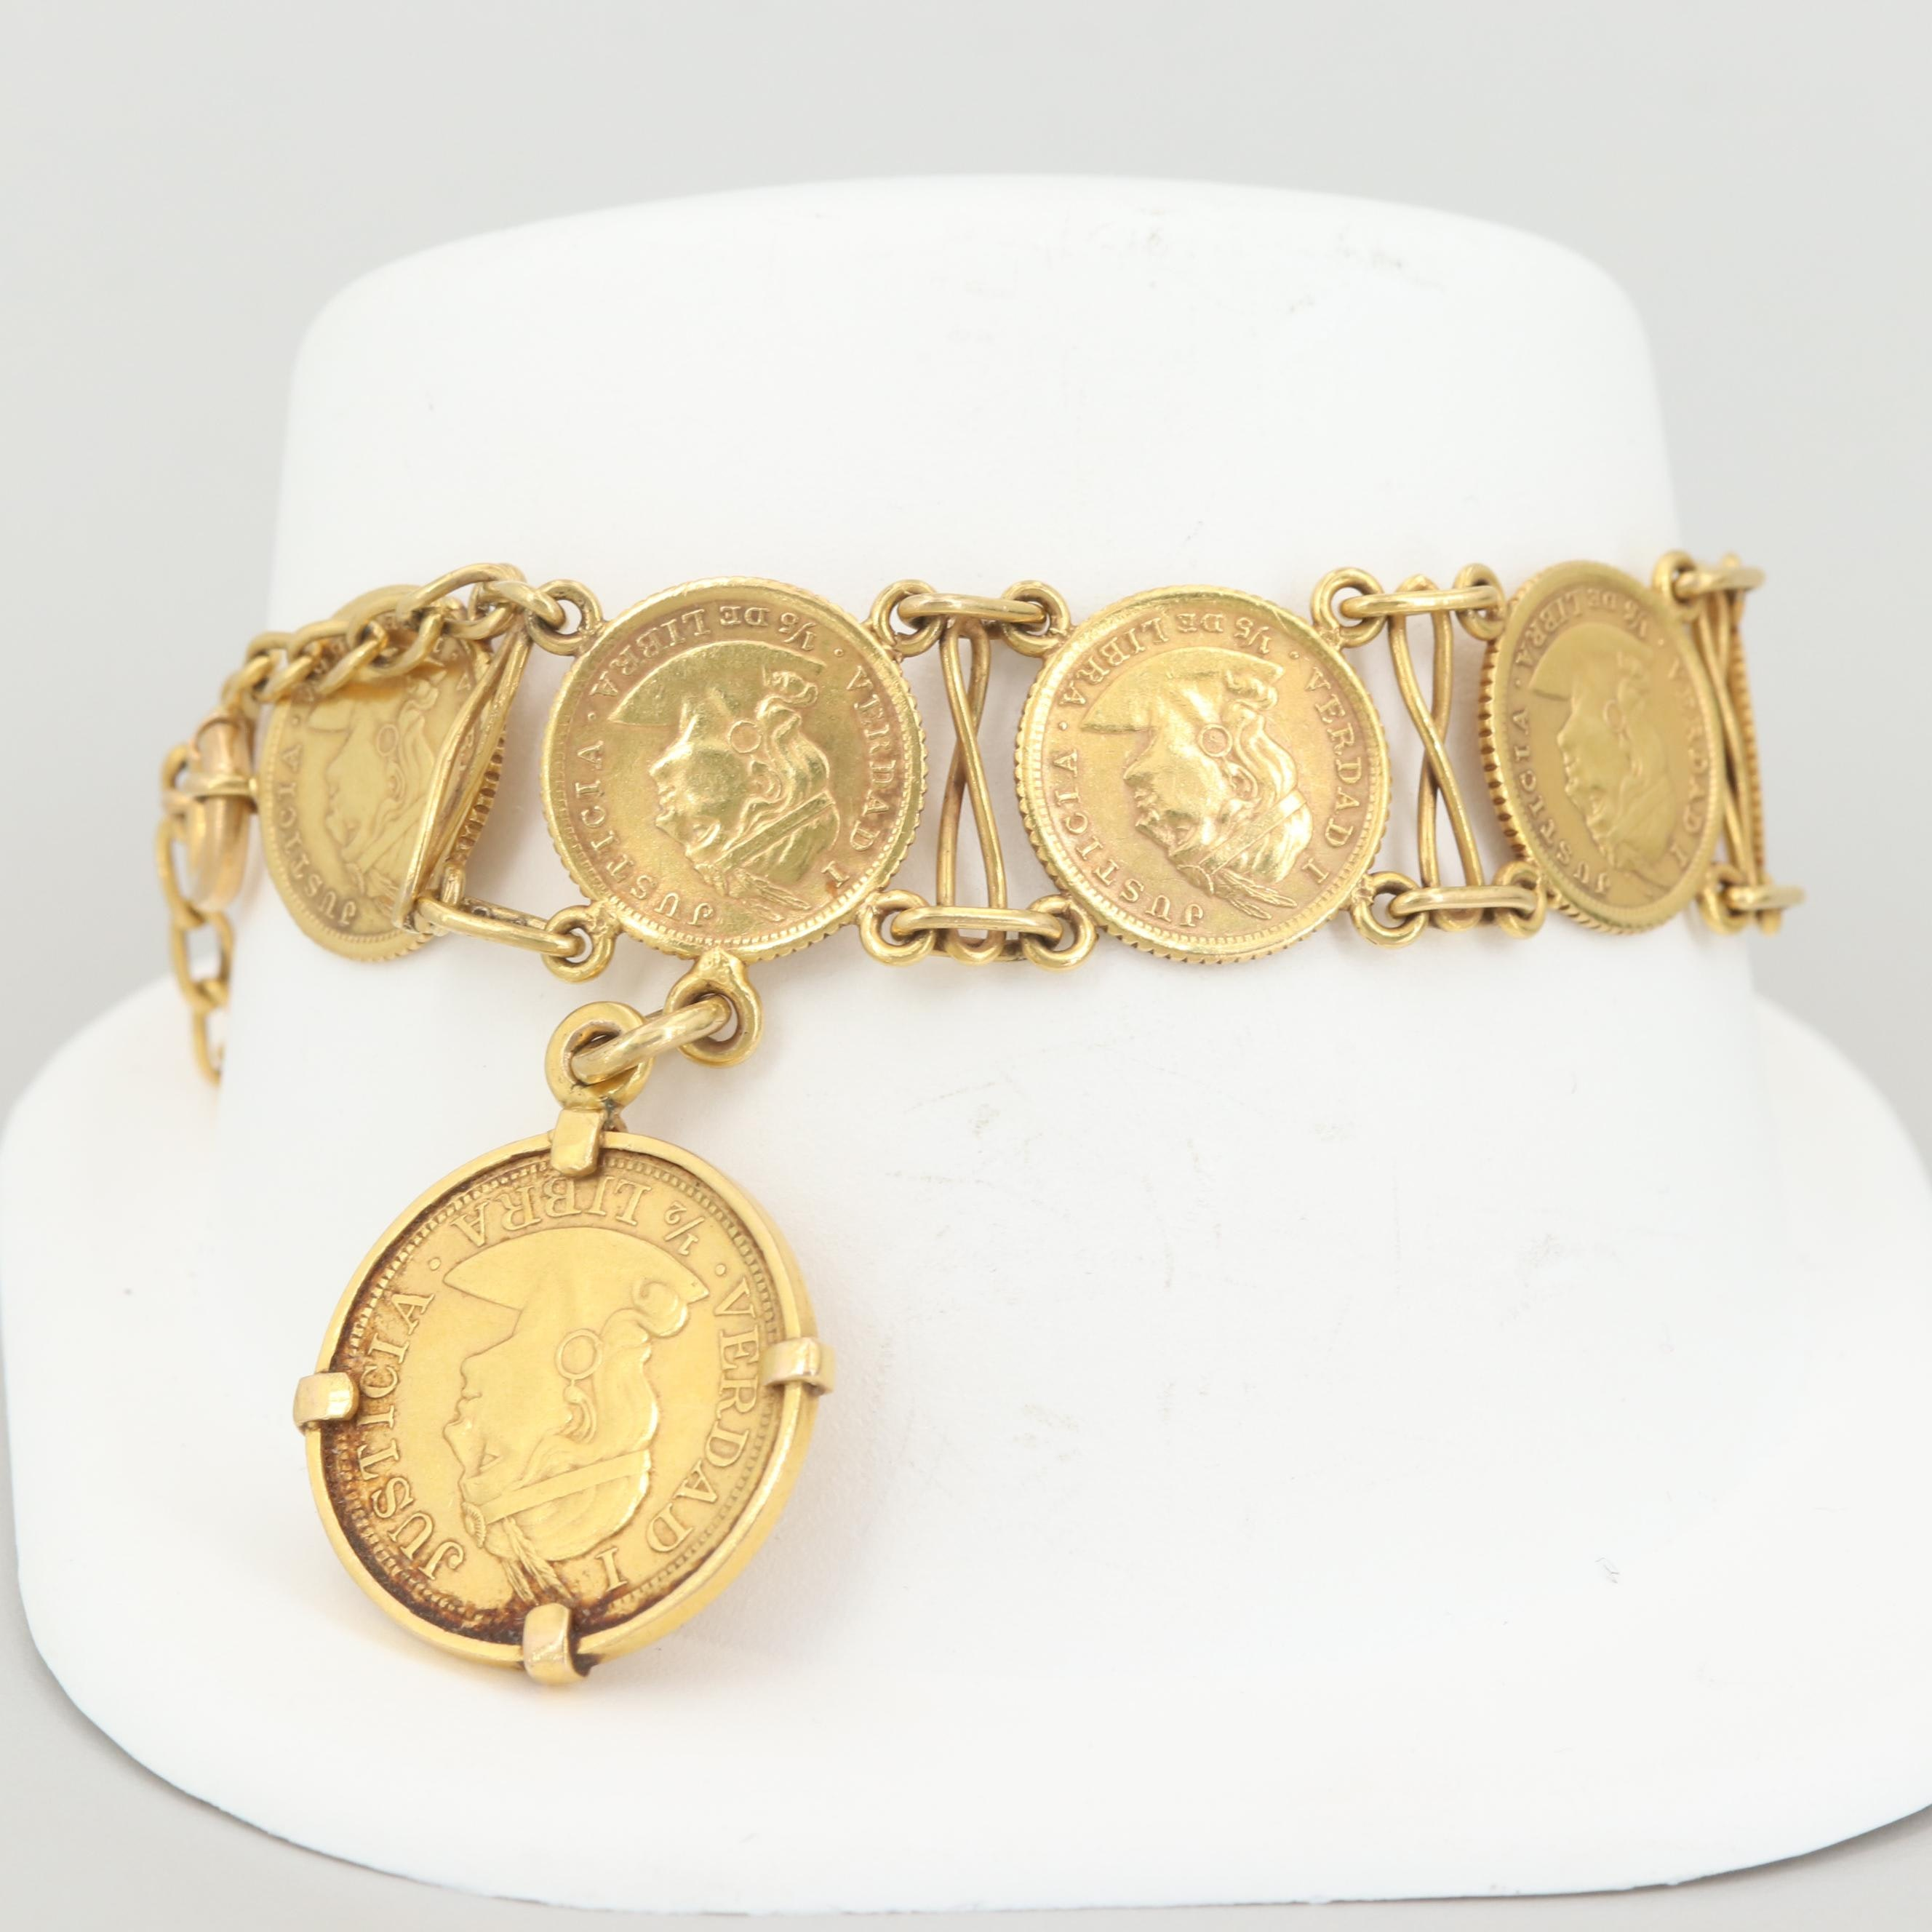 14K and 18K Gold Bracelet with 91.7% Gold Peruvian Libra Trade Coins